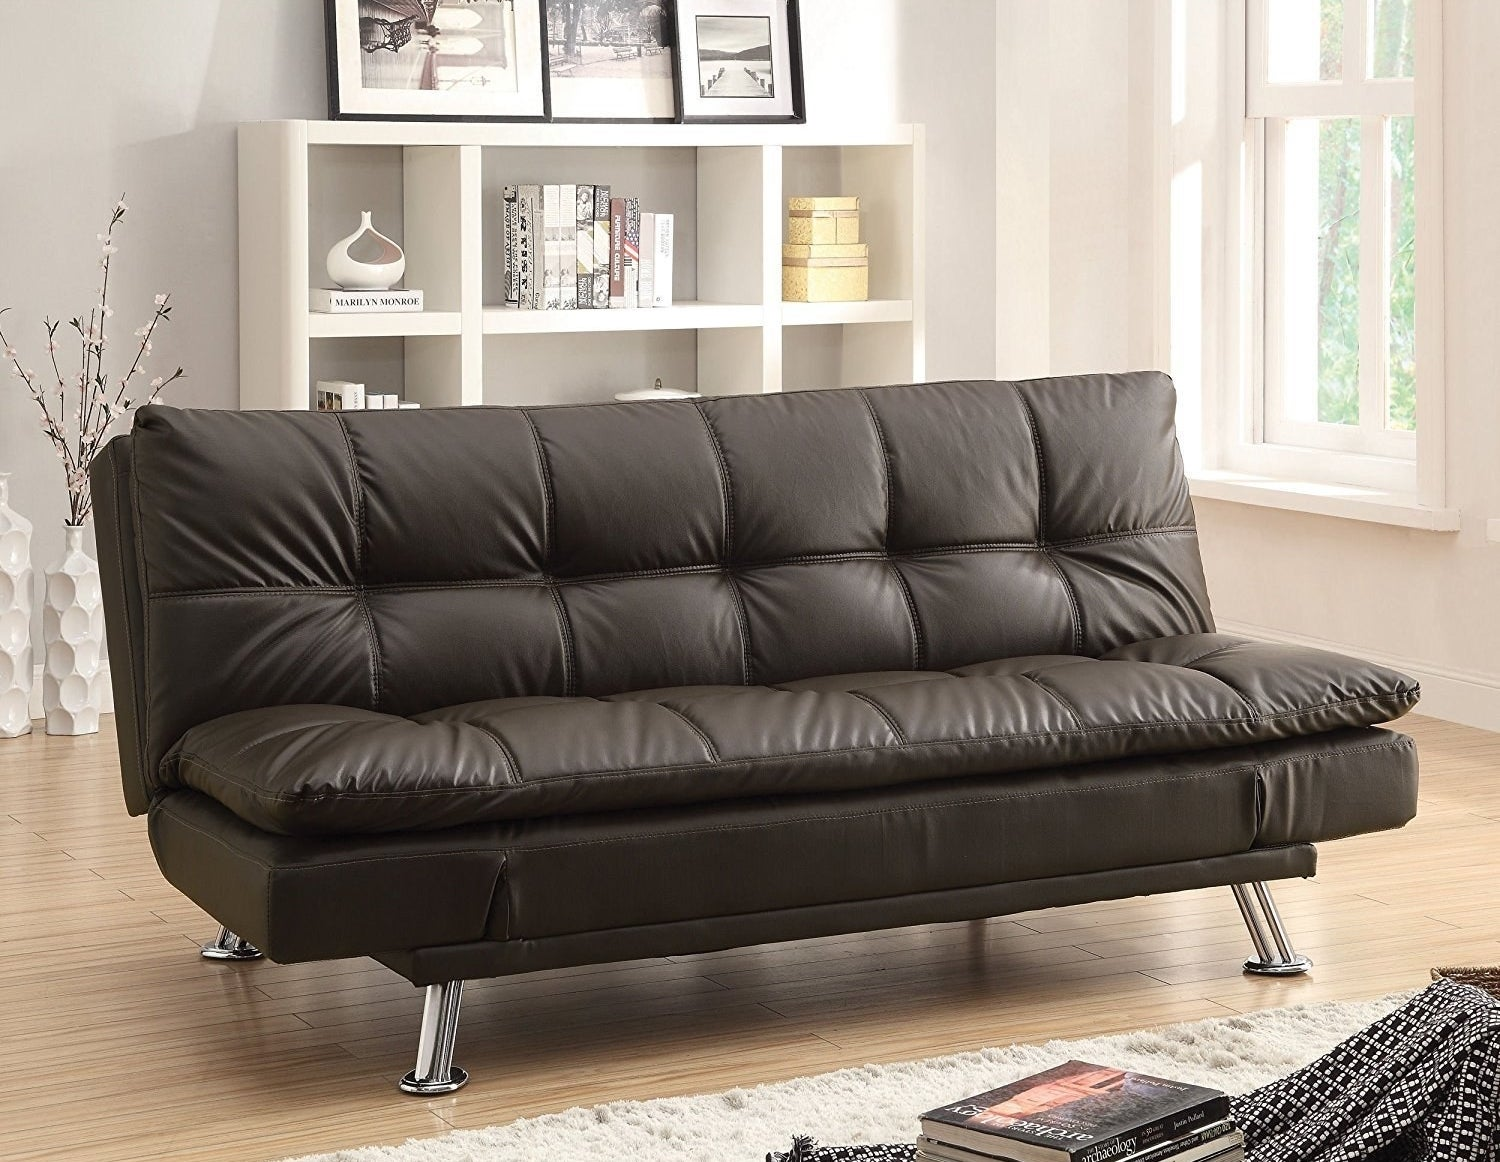 "Promising Review: ""Well made faux-leather futon couch. I've received lots of compliments on it. Only wish it could fit more than two people when the sides are up."" —boriqatPrice: $319.68"